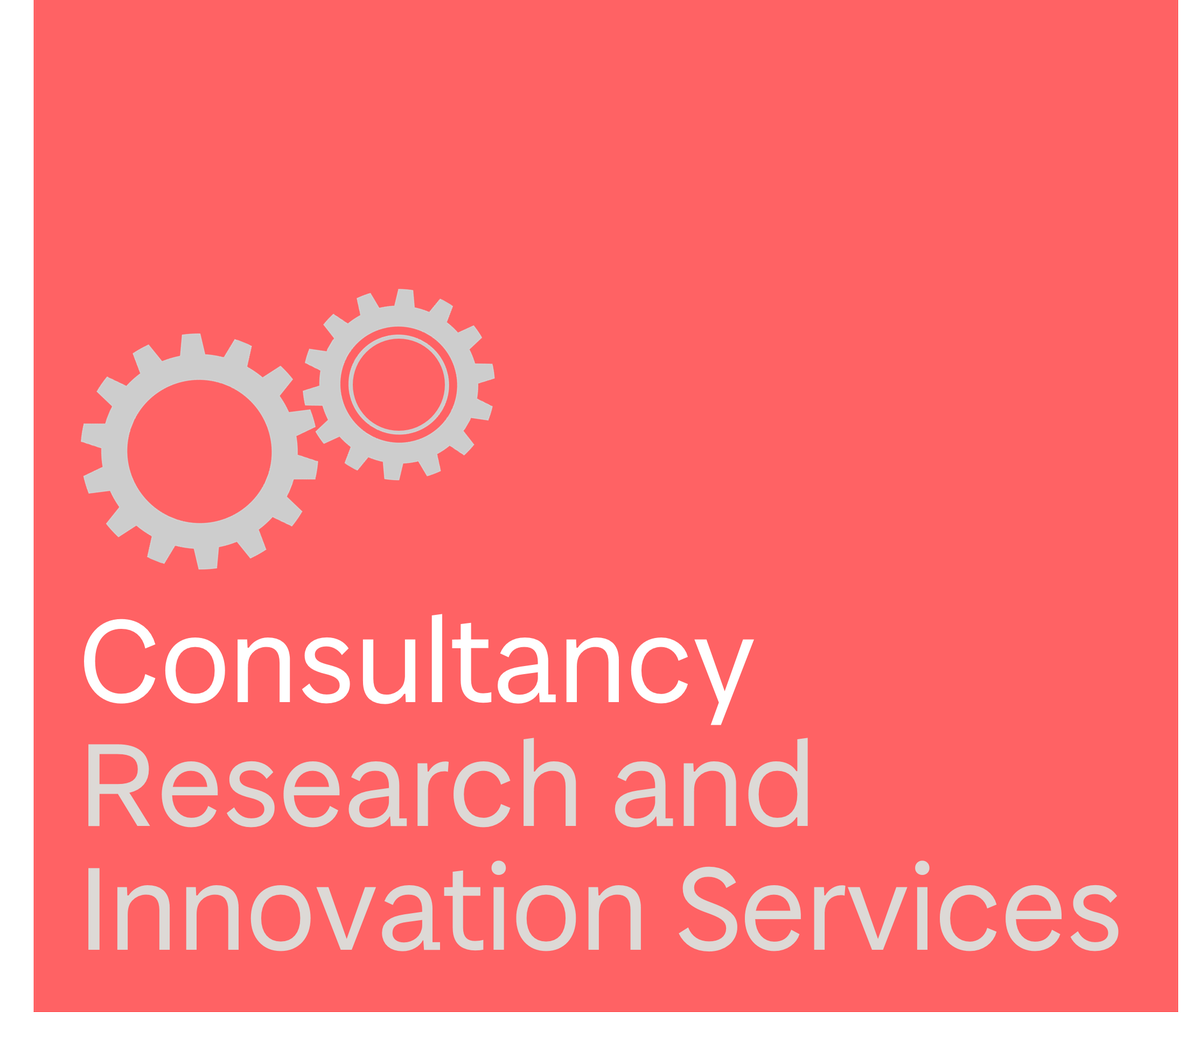 #dundeeuni staff, have you considered consultancy as a way to engage &amp; make impact? Find out more:  http:// uod.ac.uk/2vyhCLD  &nbsp;   #mostinnovative<br>http://pic.twitter.com/741u7POTbO